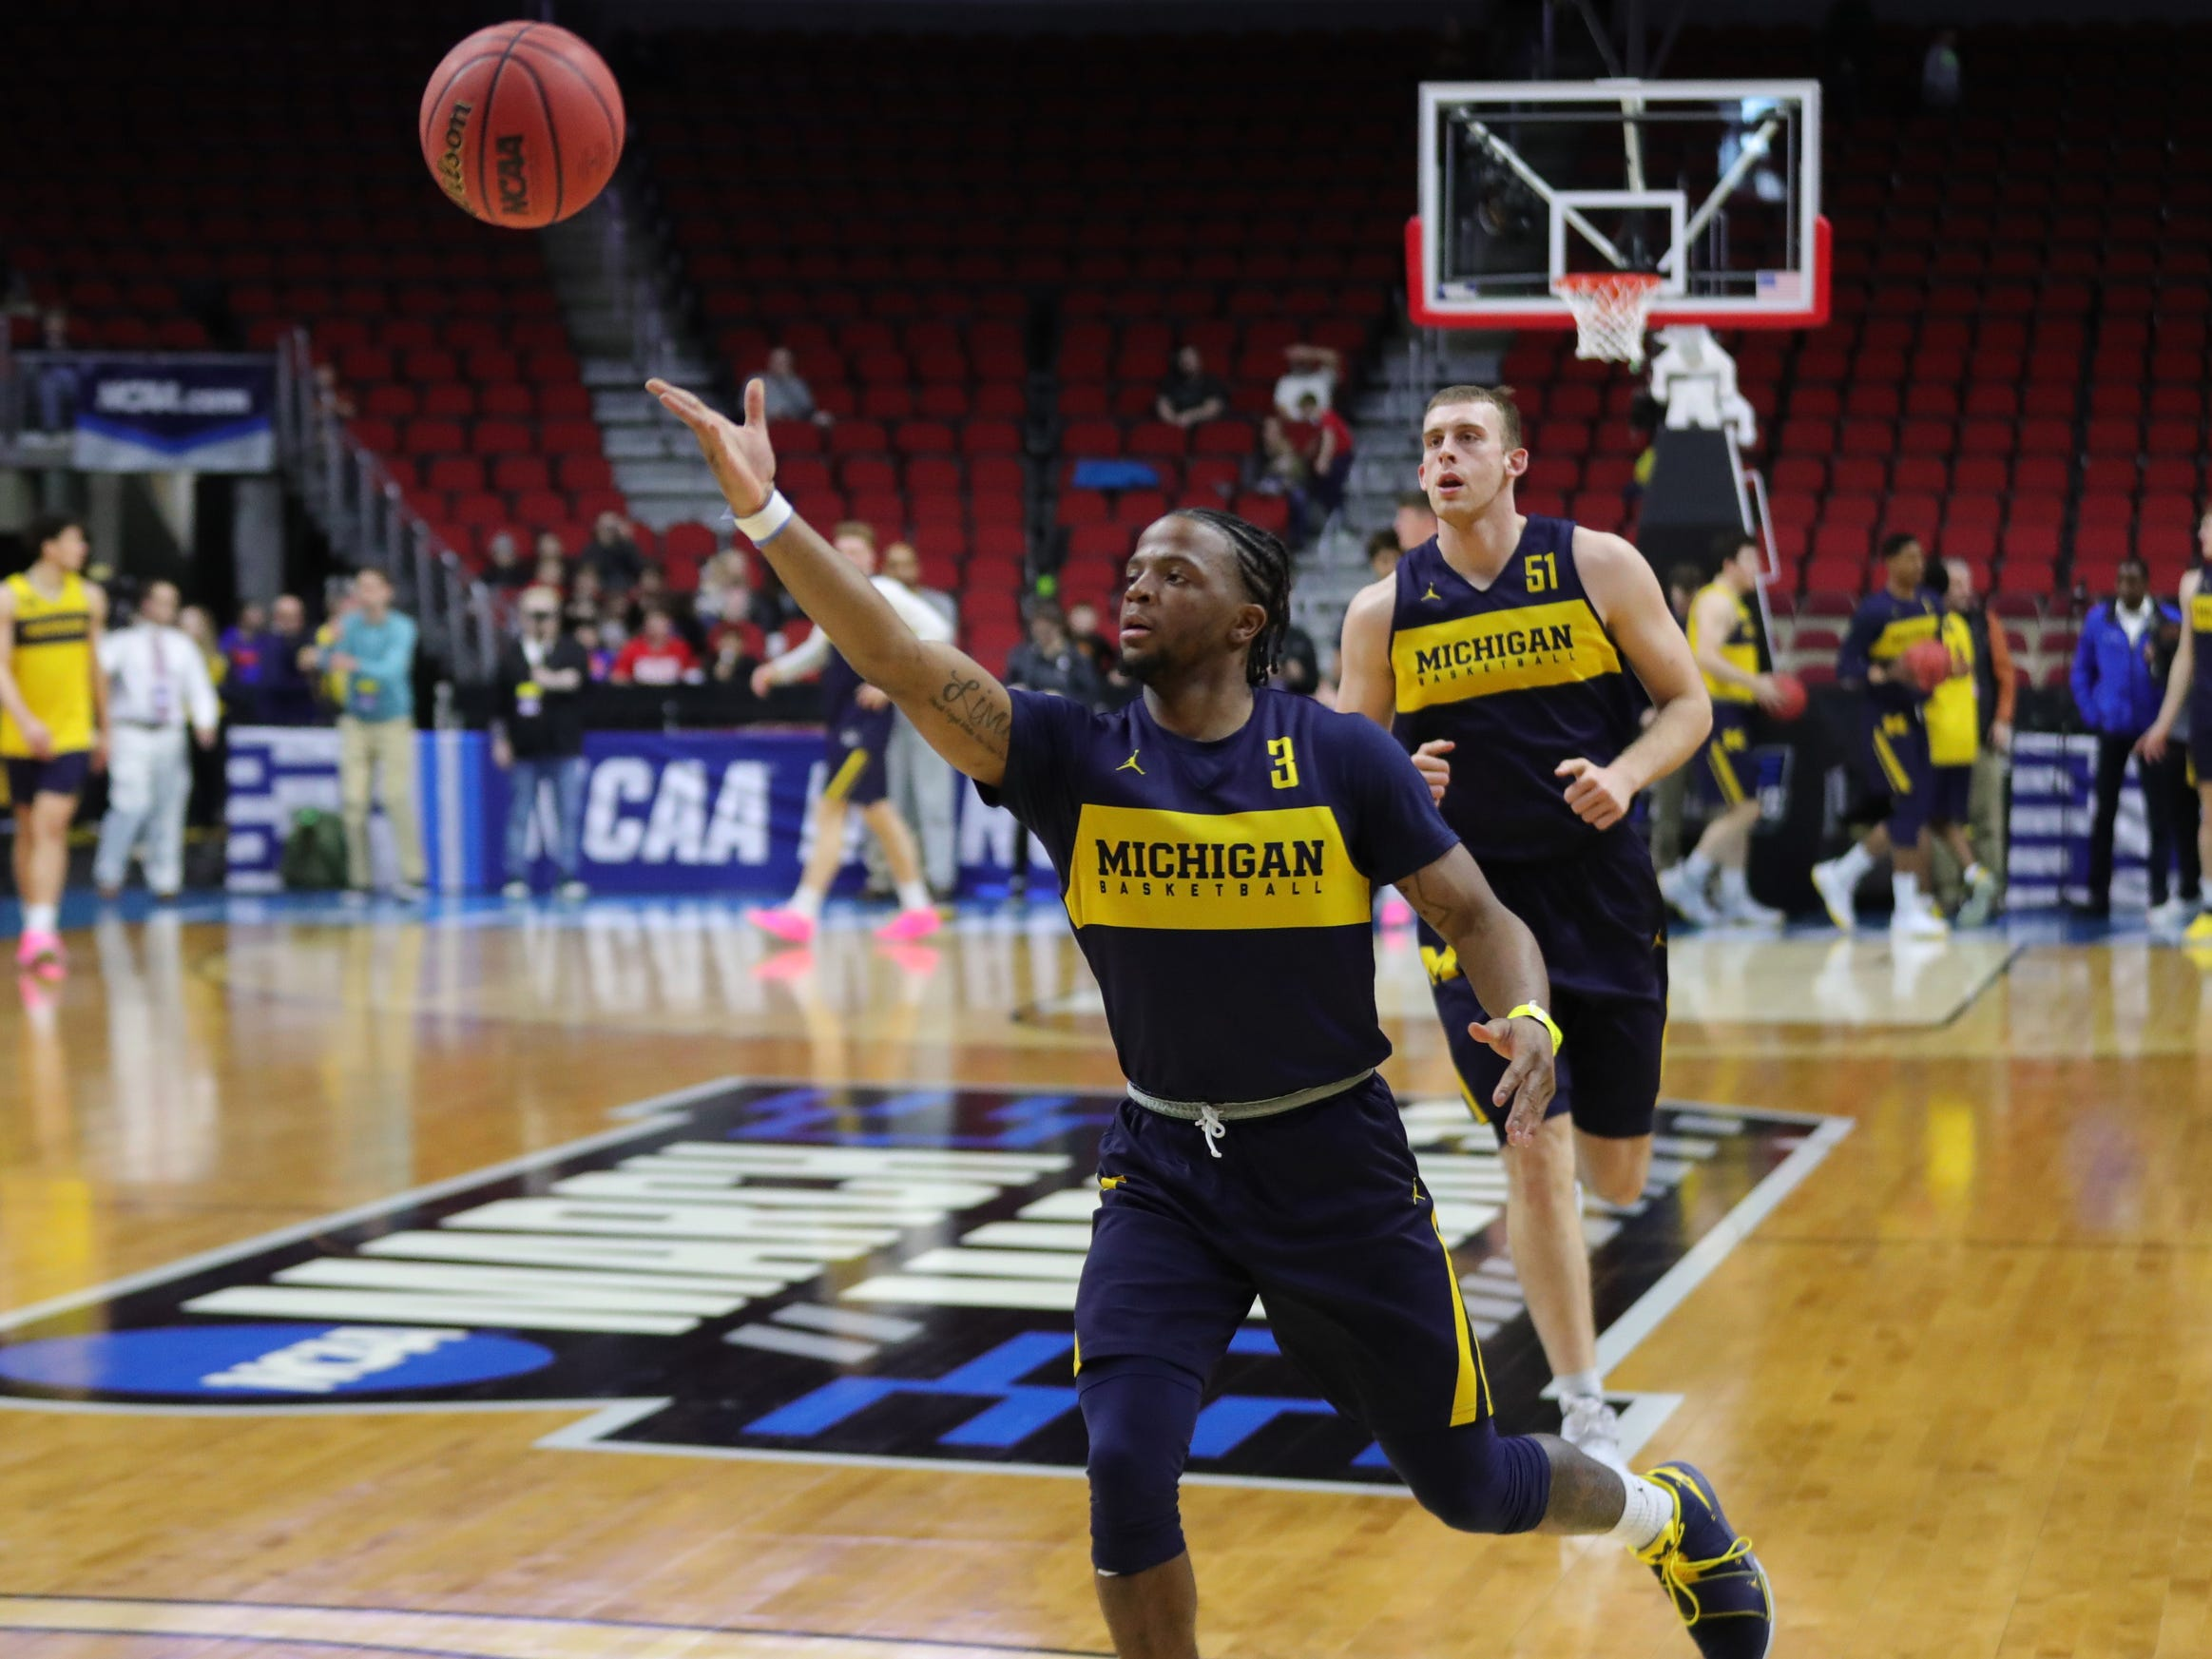 Michigan guard Zavier Simpson passes during practice for their first round NCAA Tournament game against Montana Wednesday, March 20, 2019 at Wells Fargo Arena in Des Moines, Iowa.